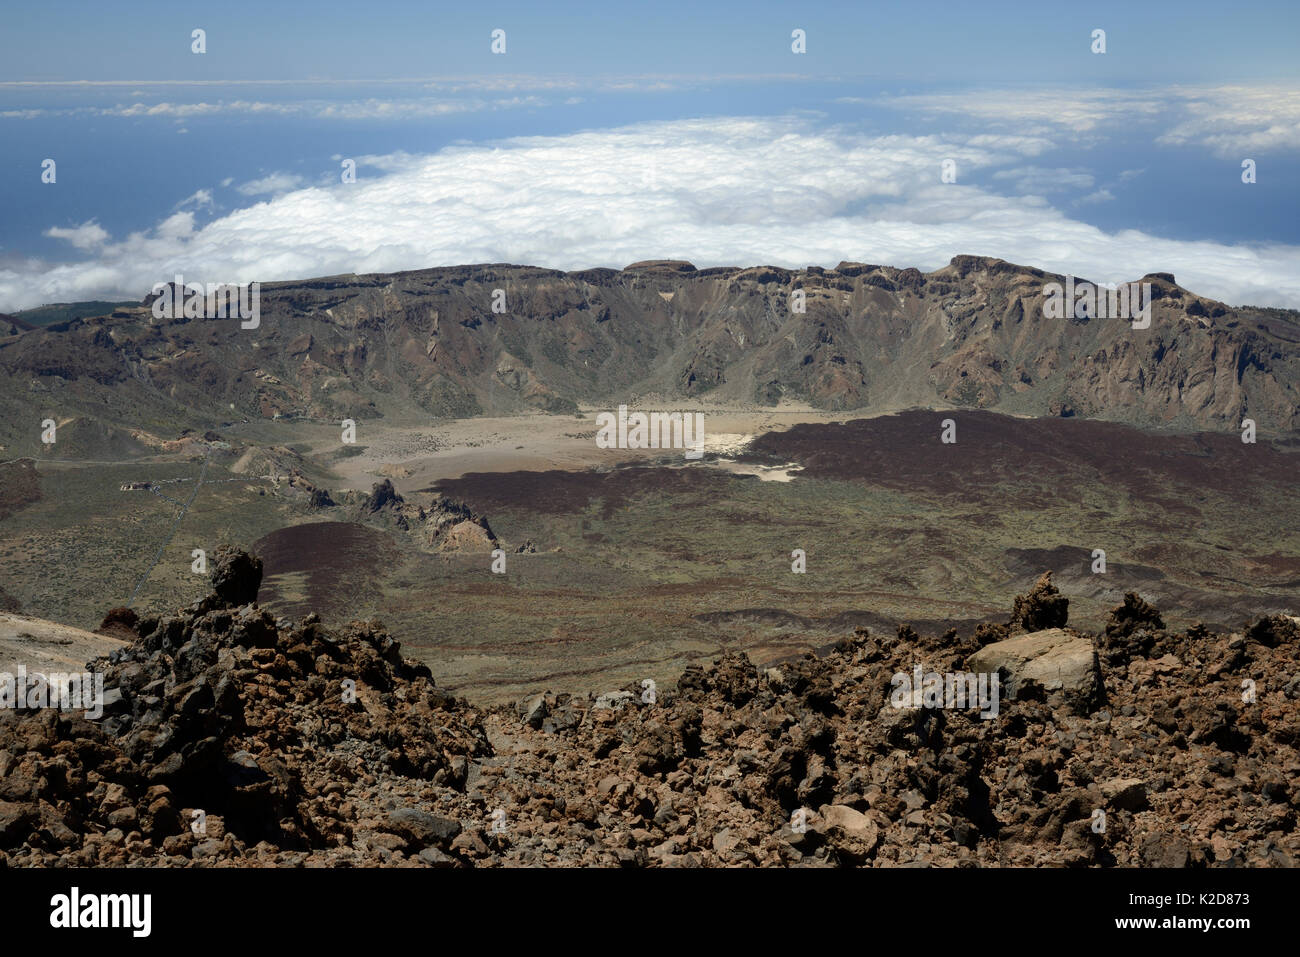 Overview of Las Canadas caldera from the 3718m summit of Mount Teide, the highest mountain in Spain, with old lava flows and pumice deposits, with clouds over the sea in the background, Tenerife, May. - Stock Image